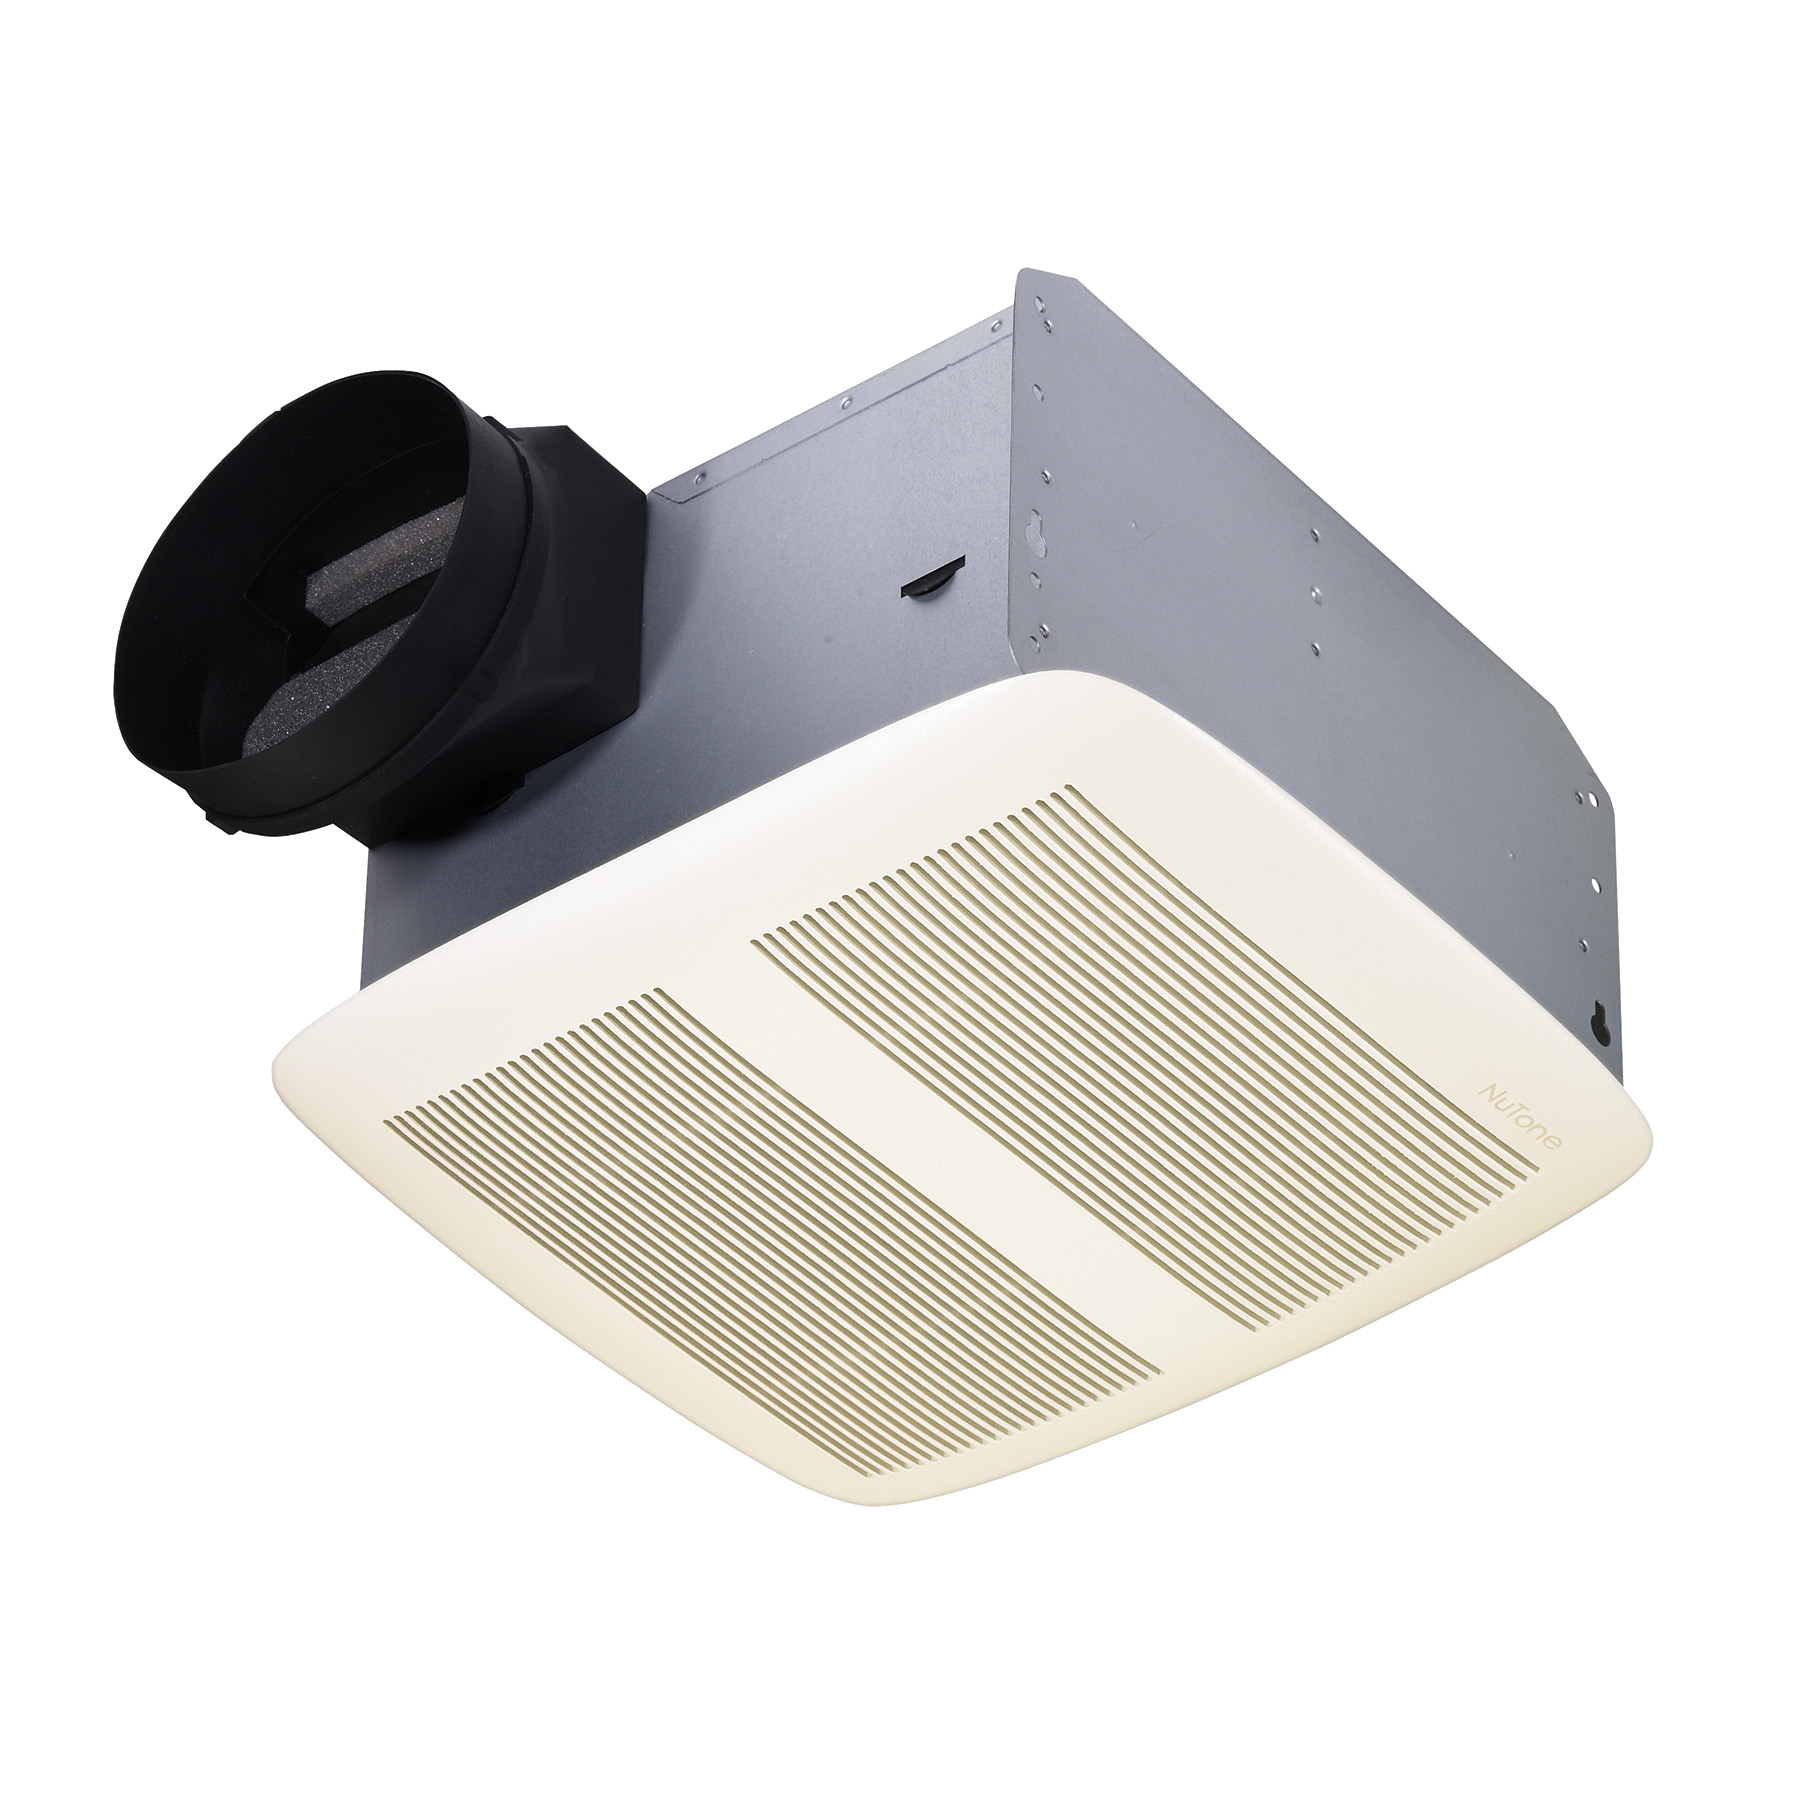 NuTone® 110 CFM Ventilation Fan with White Grille, ENERGY STAR®